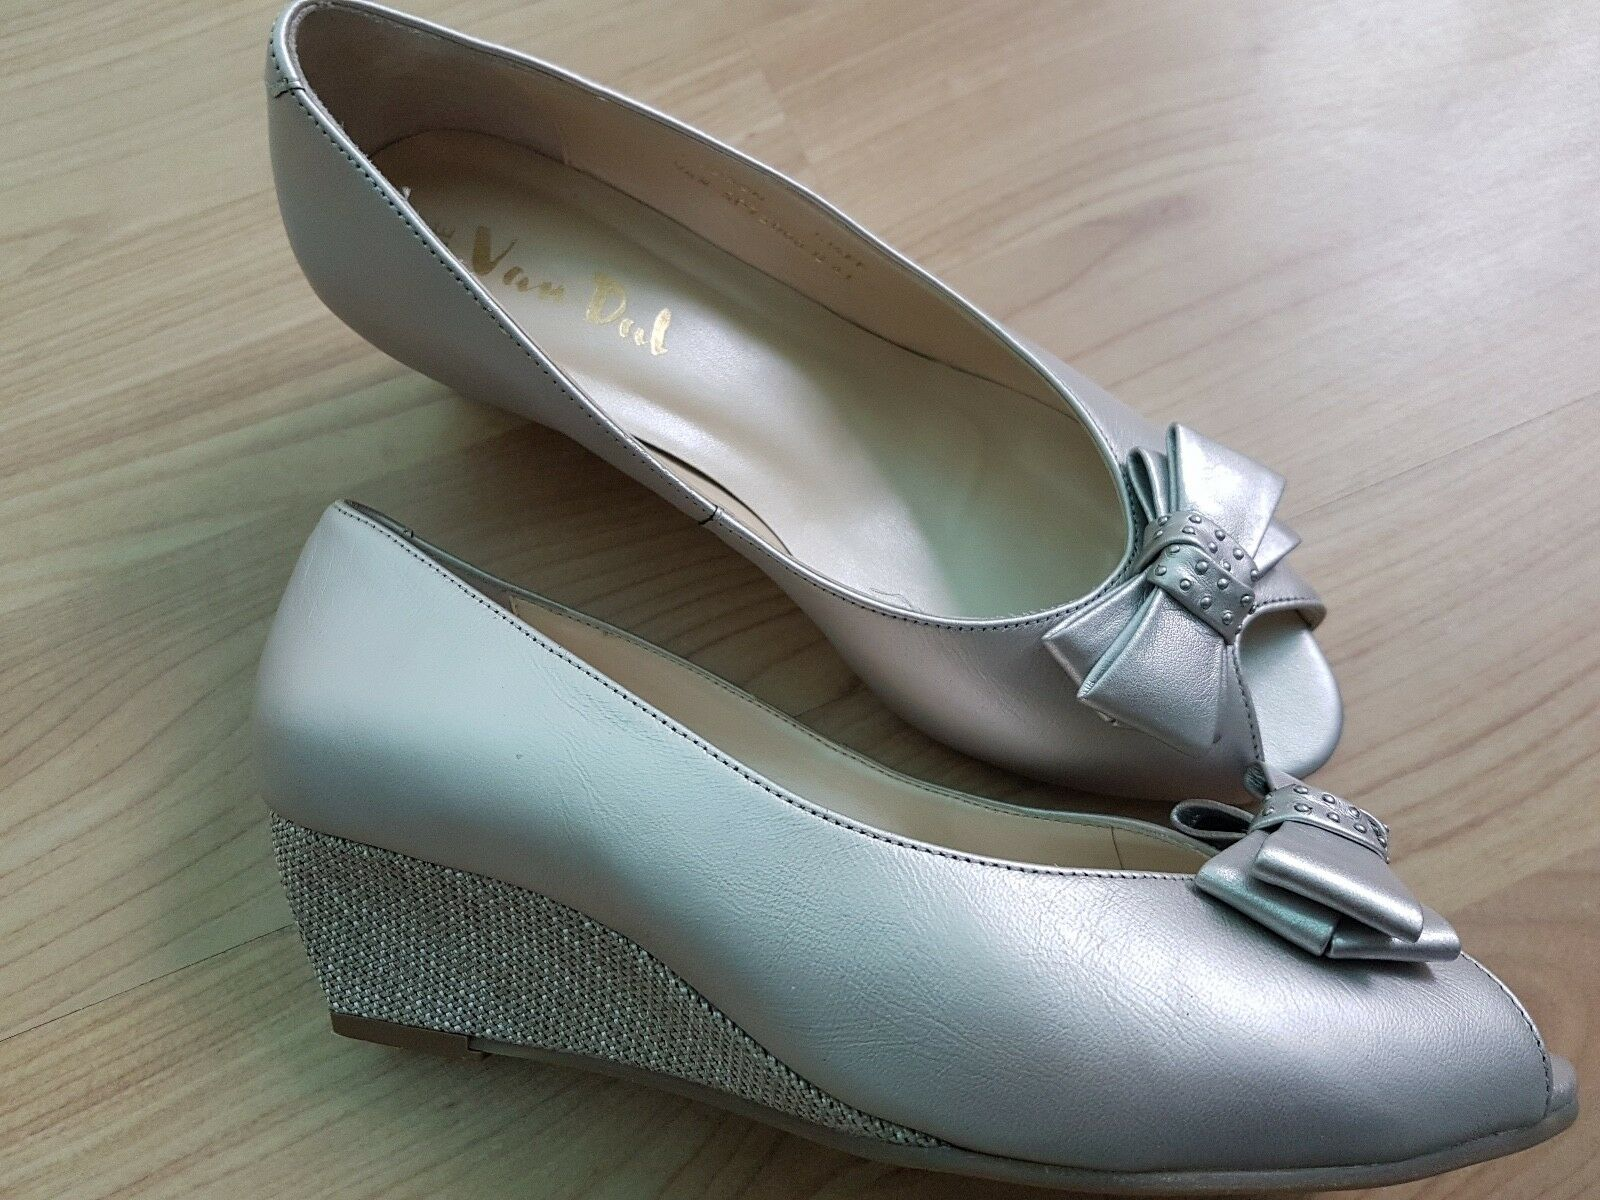 VAN DAL Hudson Metallic wide fitting leather NEW wedges size 5.5  NEW leather Bargain be43d0